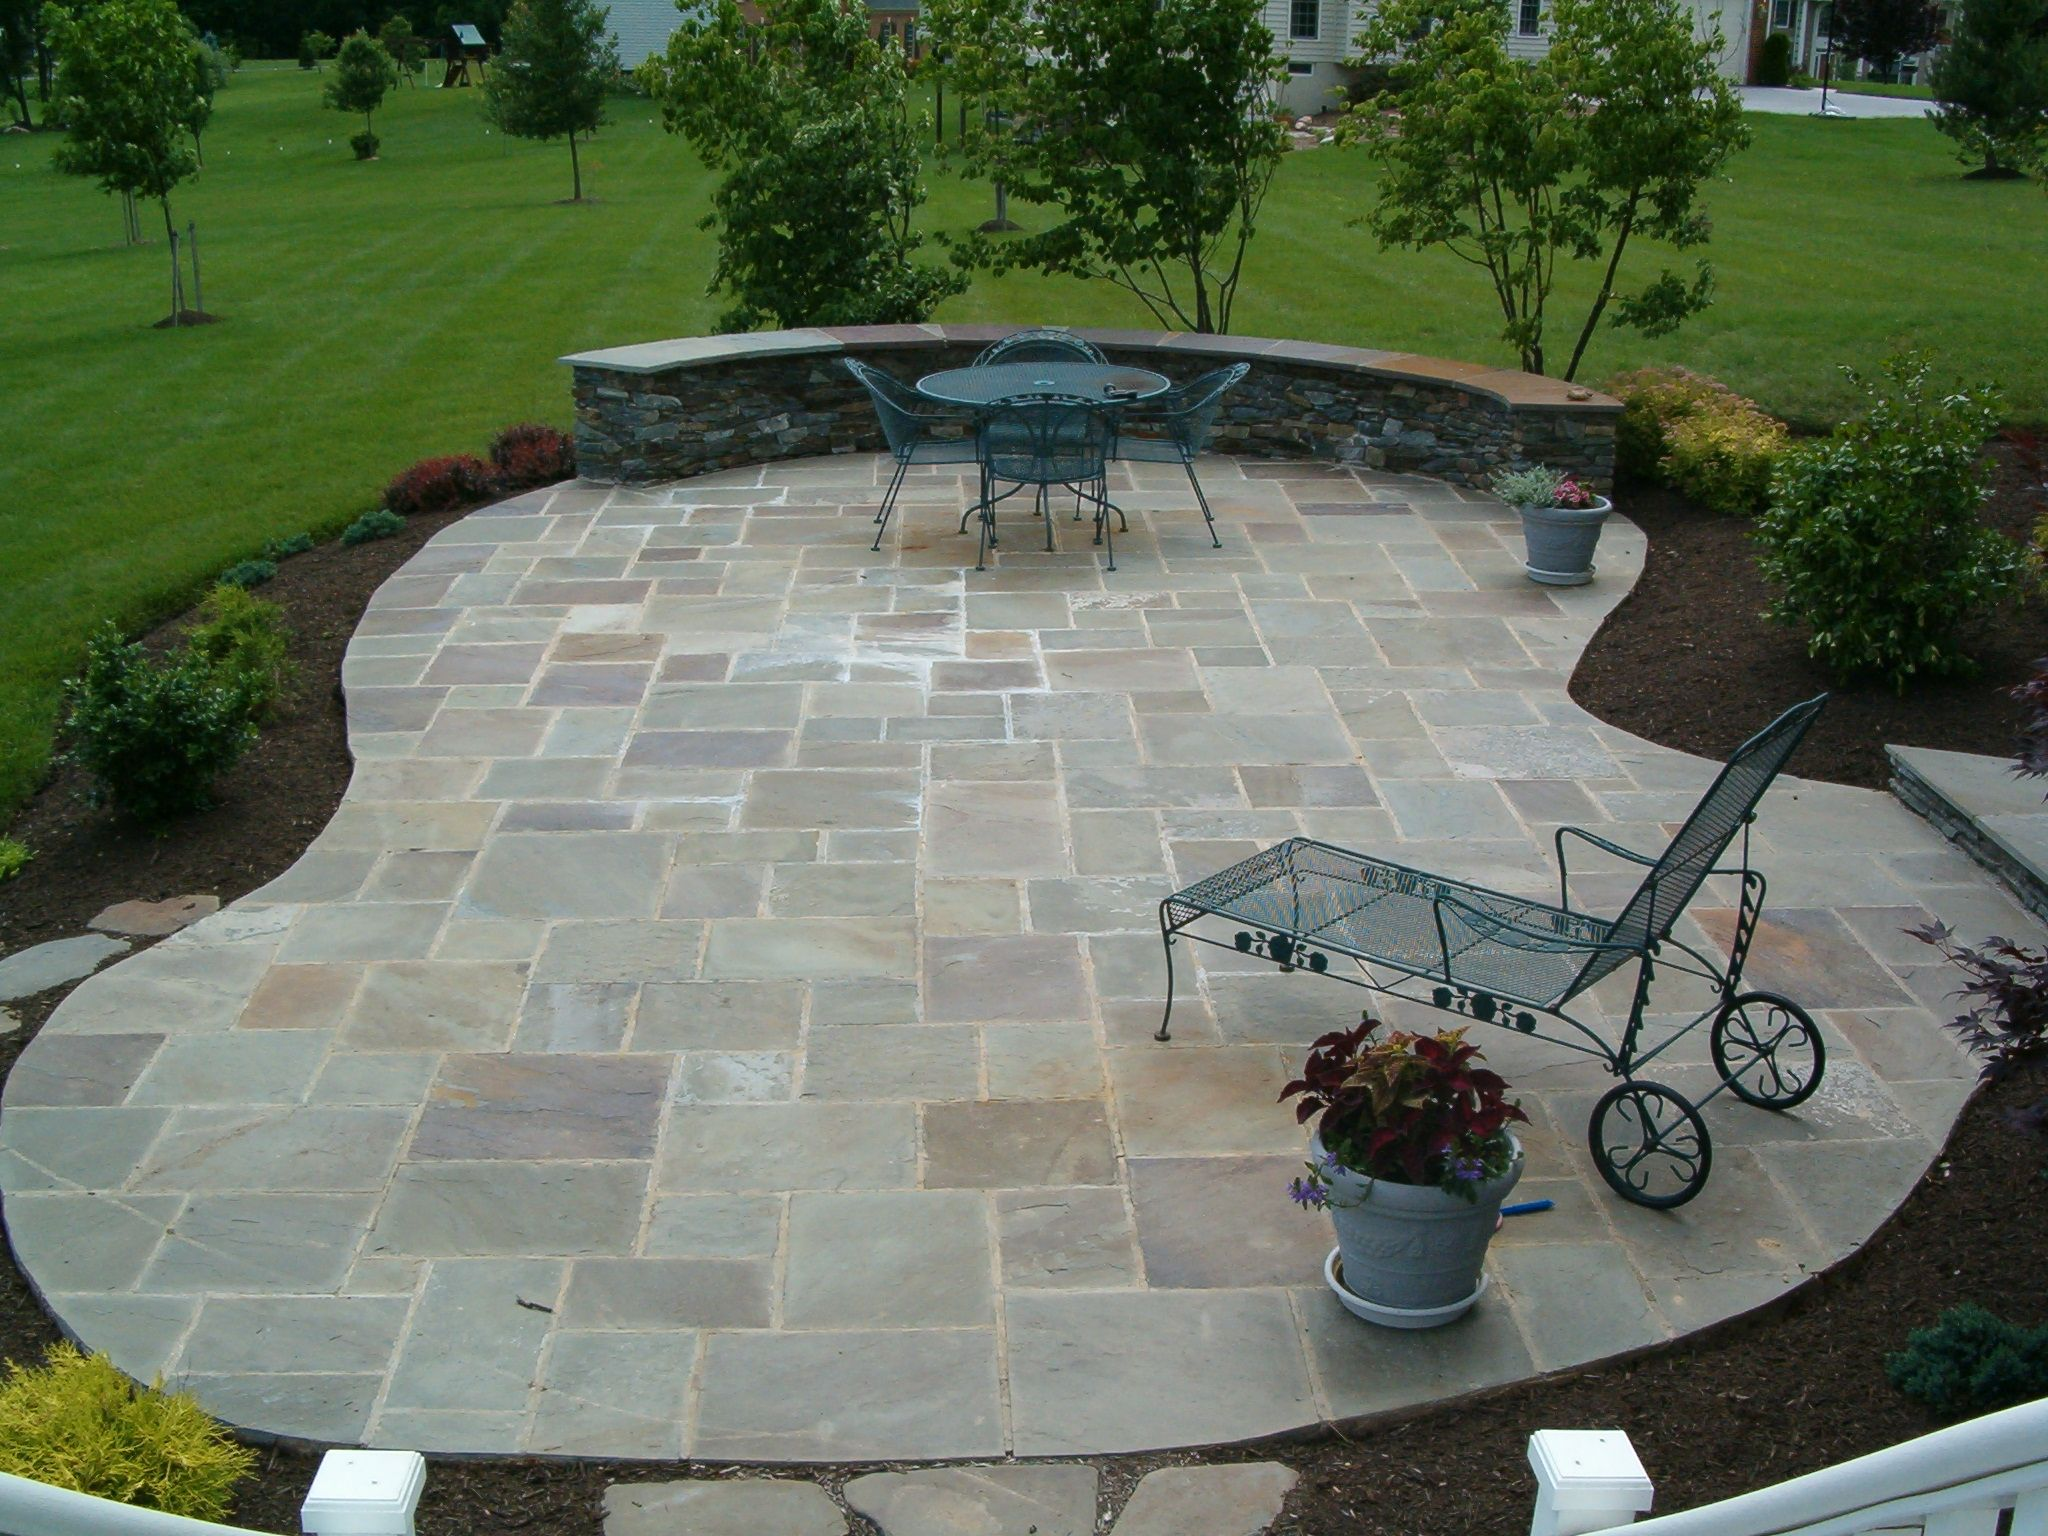 paving design cheap stone brick olympus camera concrete digital large wonderful patio ideas pavers designs paver